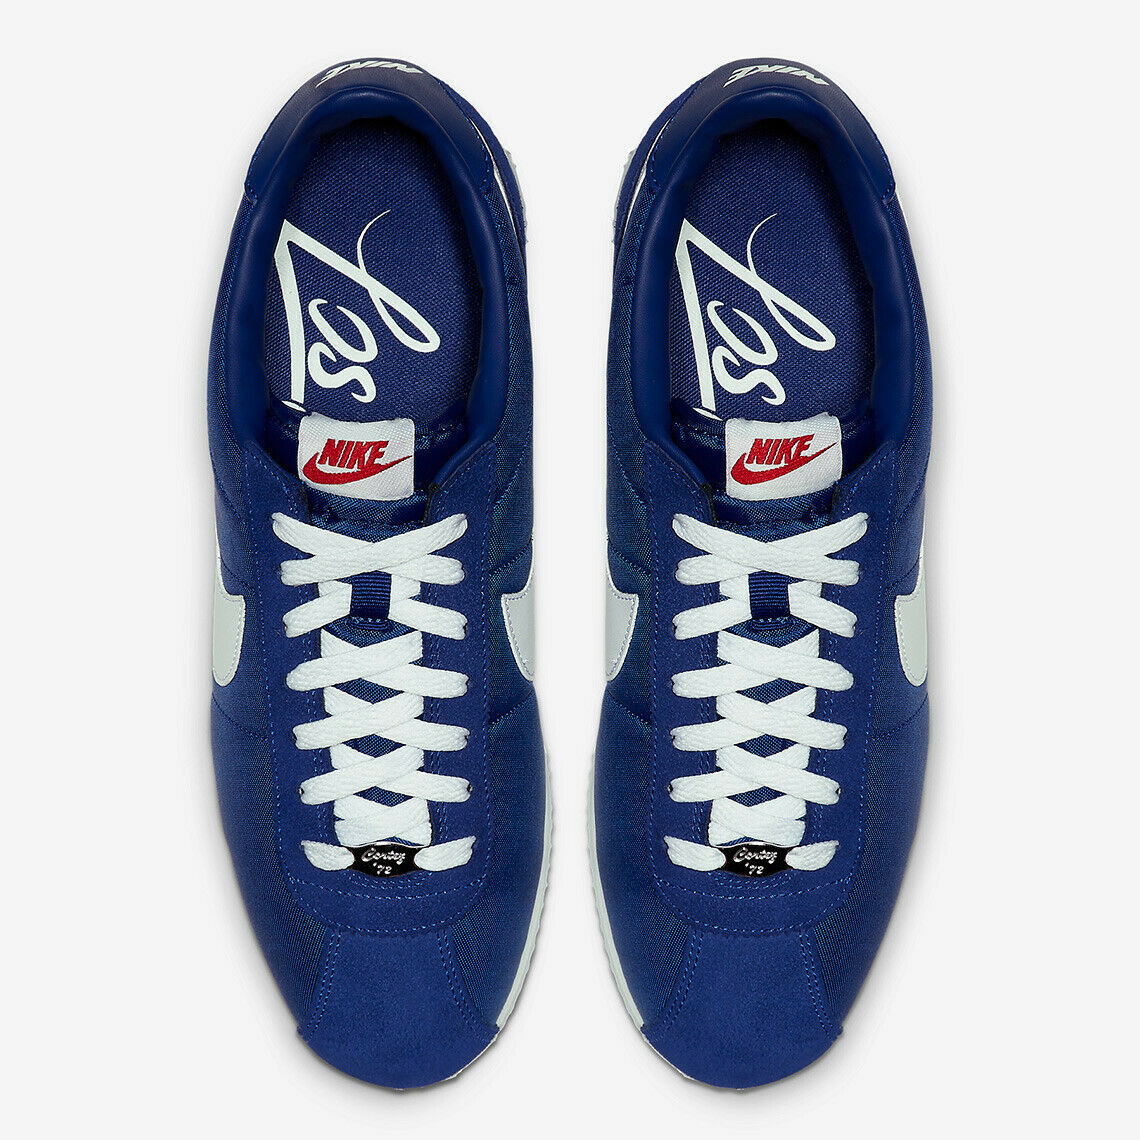 NEW Nike Cortez Los Angeles Dodgers bluee Red White SZ 11 shoes